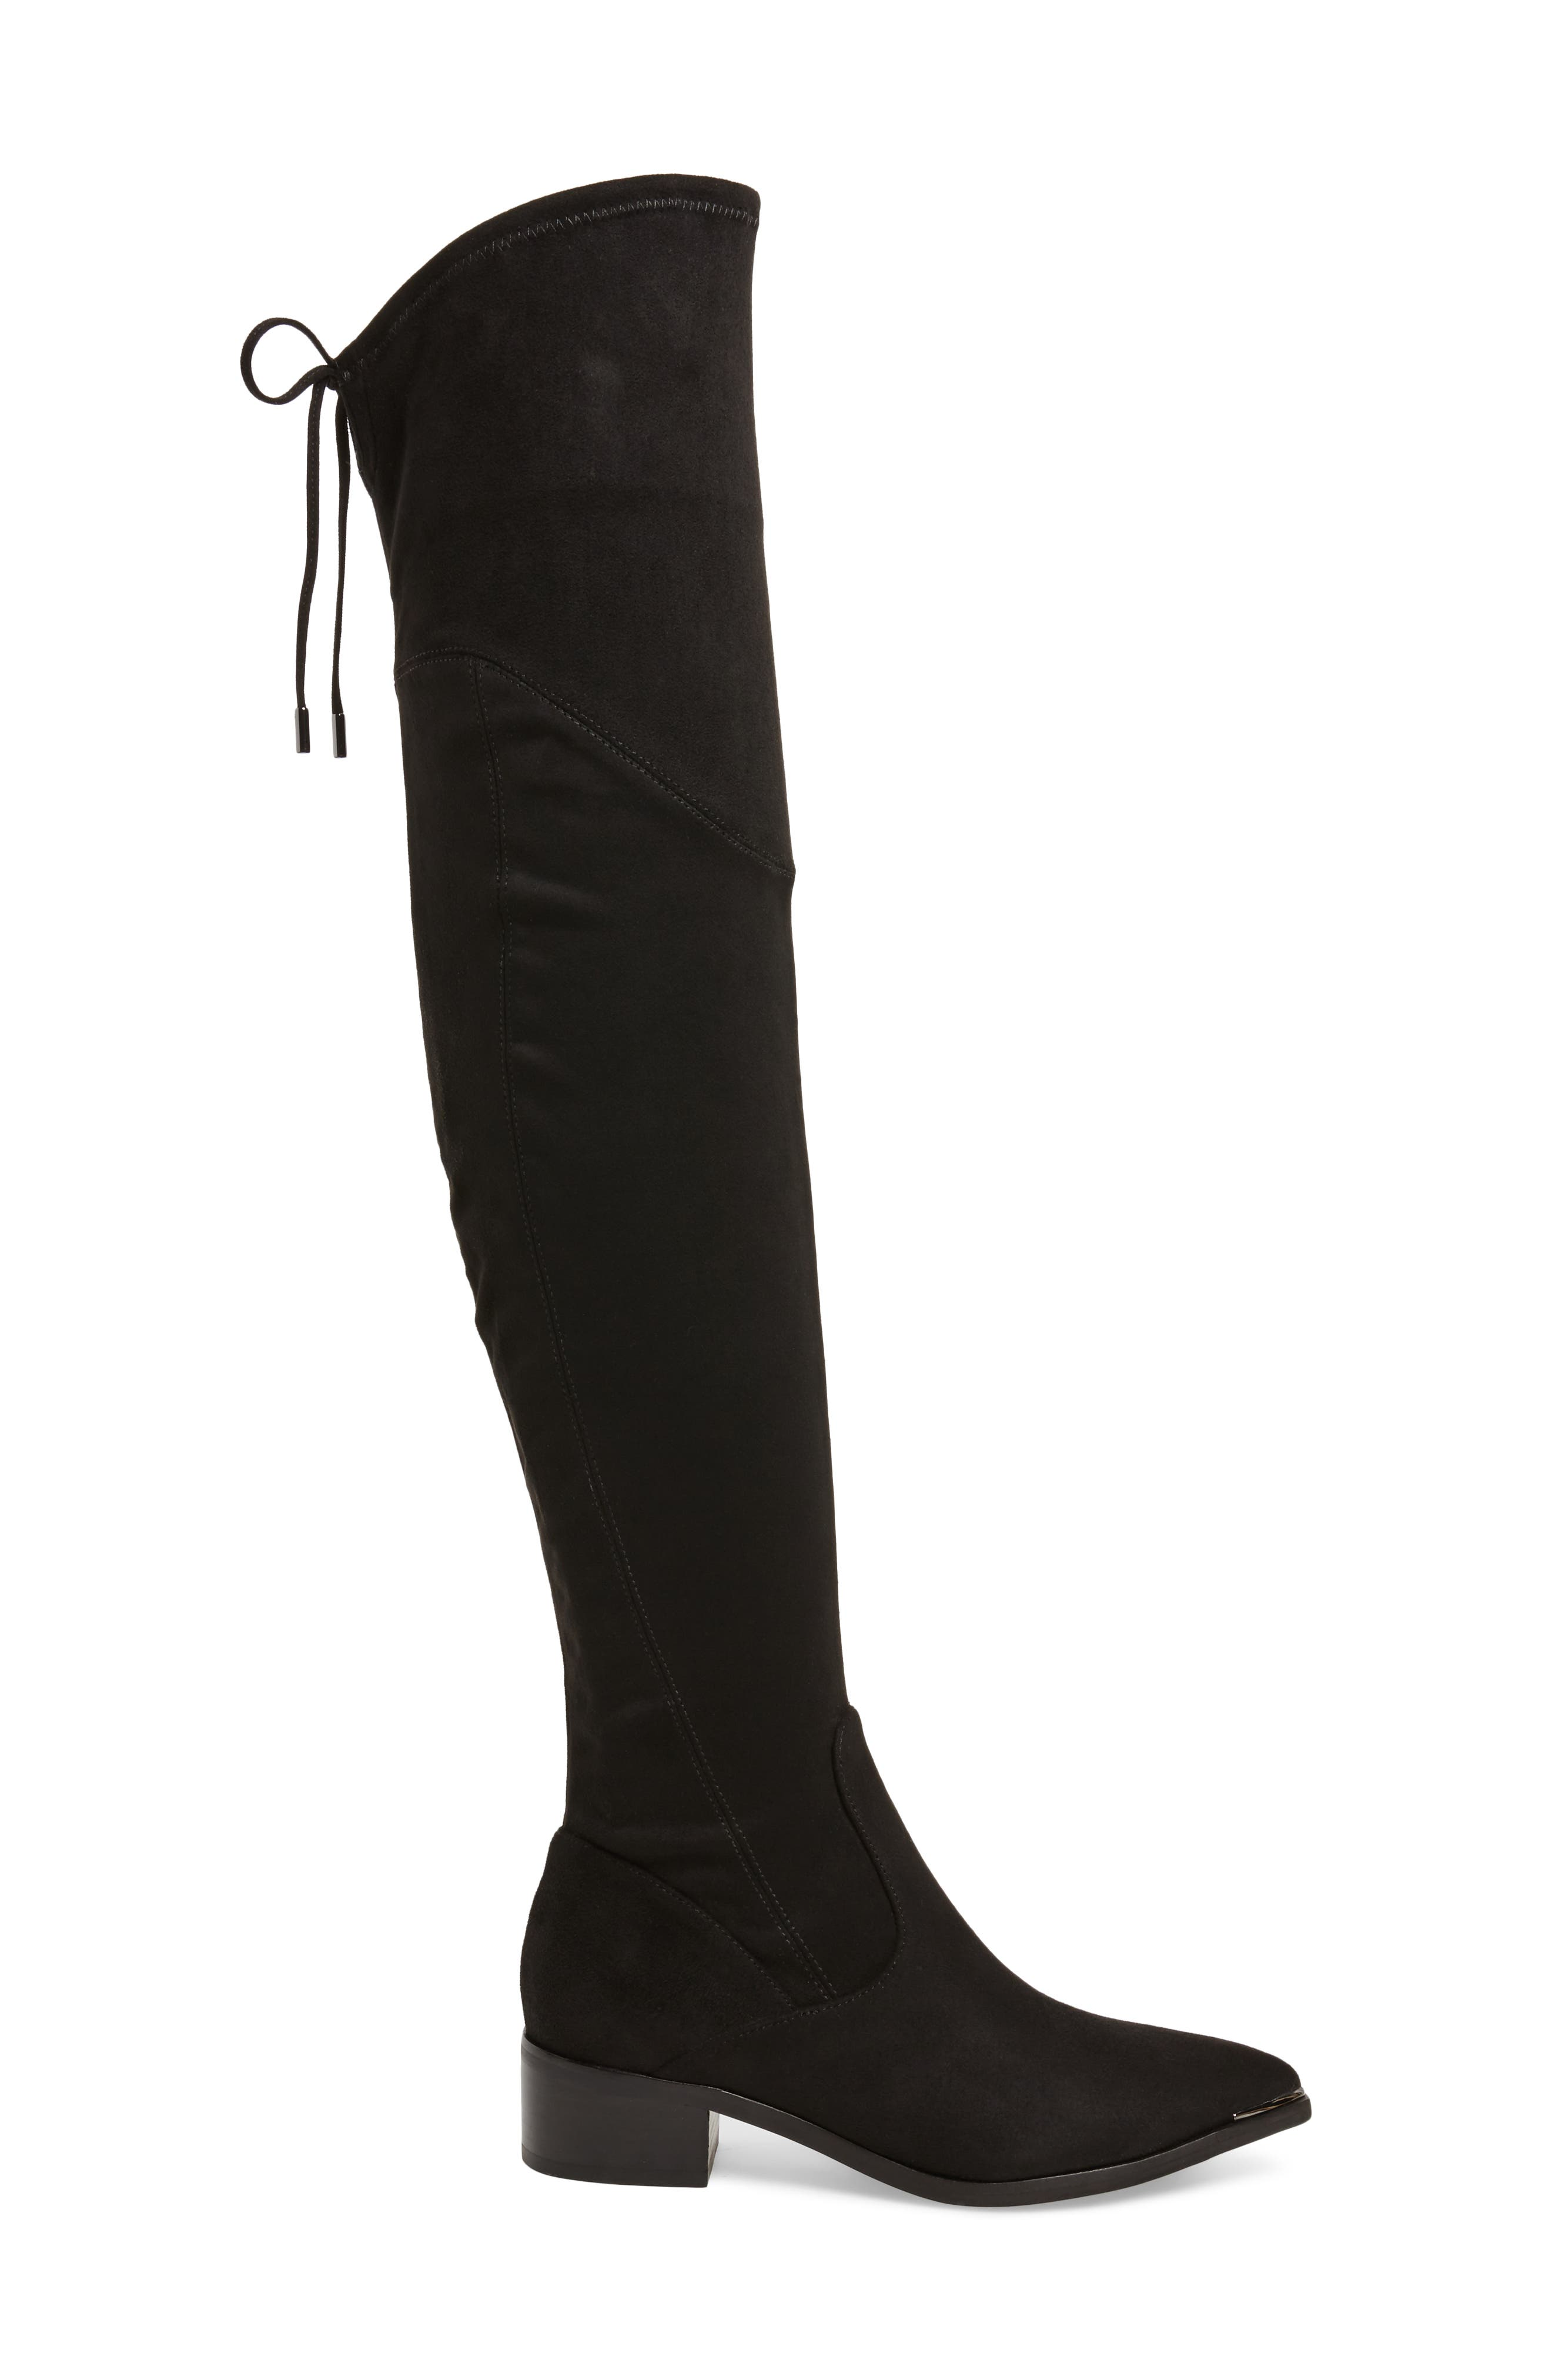 Yuna Over the Knee Boot,                             Alternate thumbnail 3, color,                             BLACK FAUX SUEDE